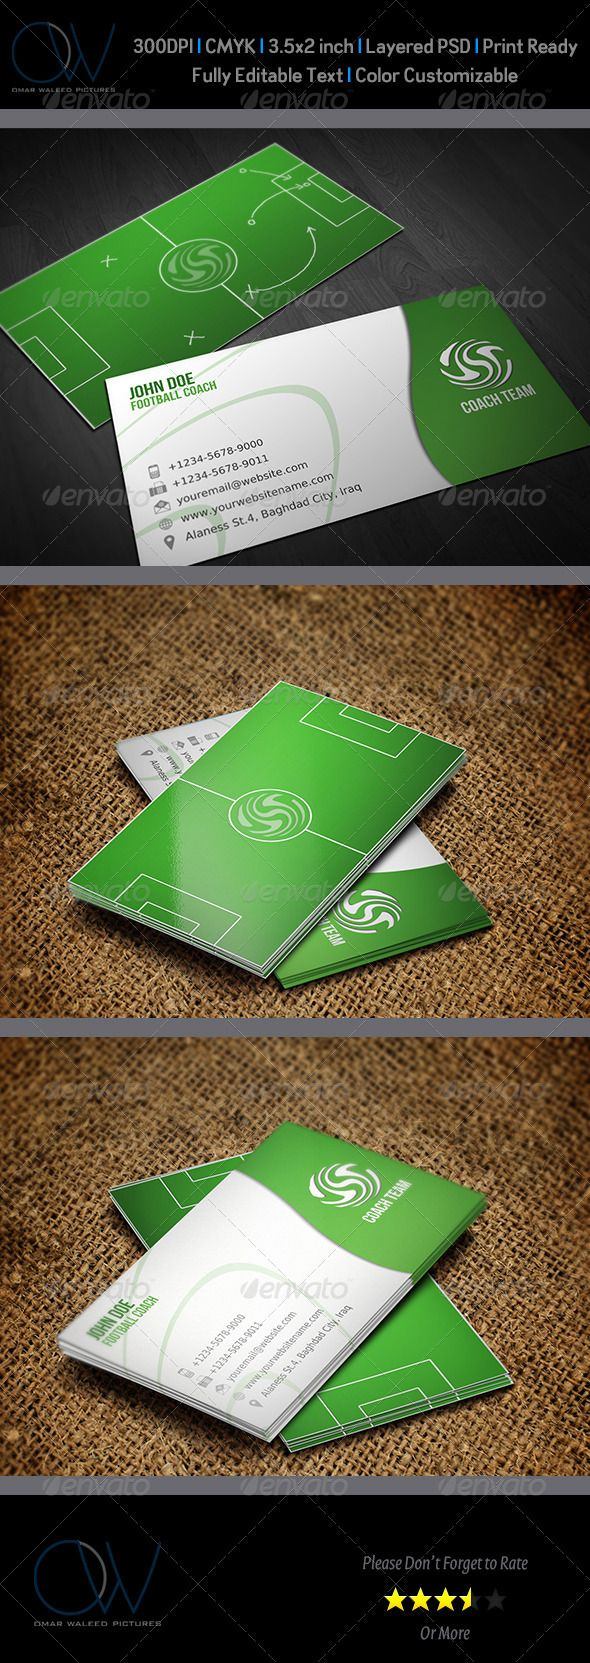 Football Coach Business Card | Business cards, Business and Logos